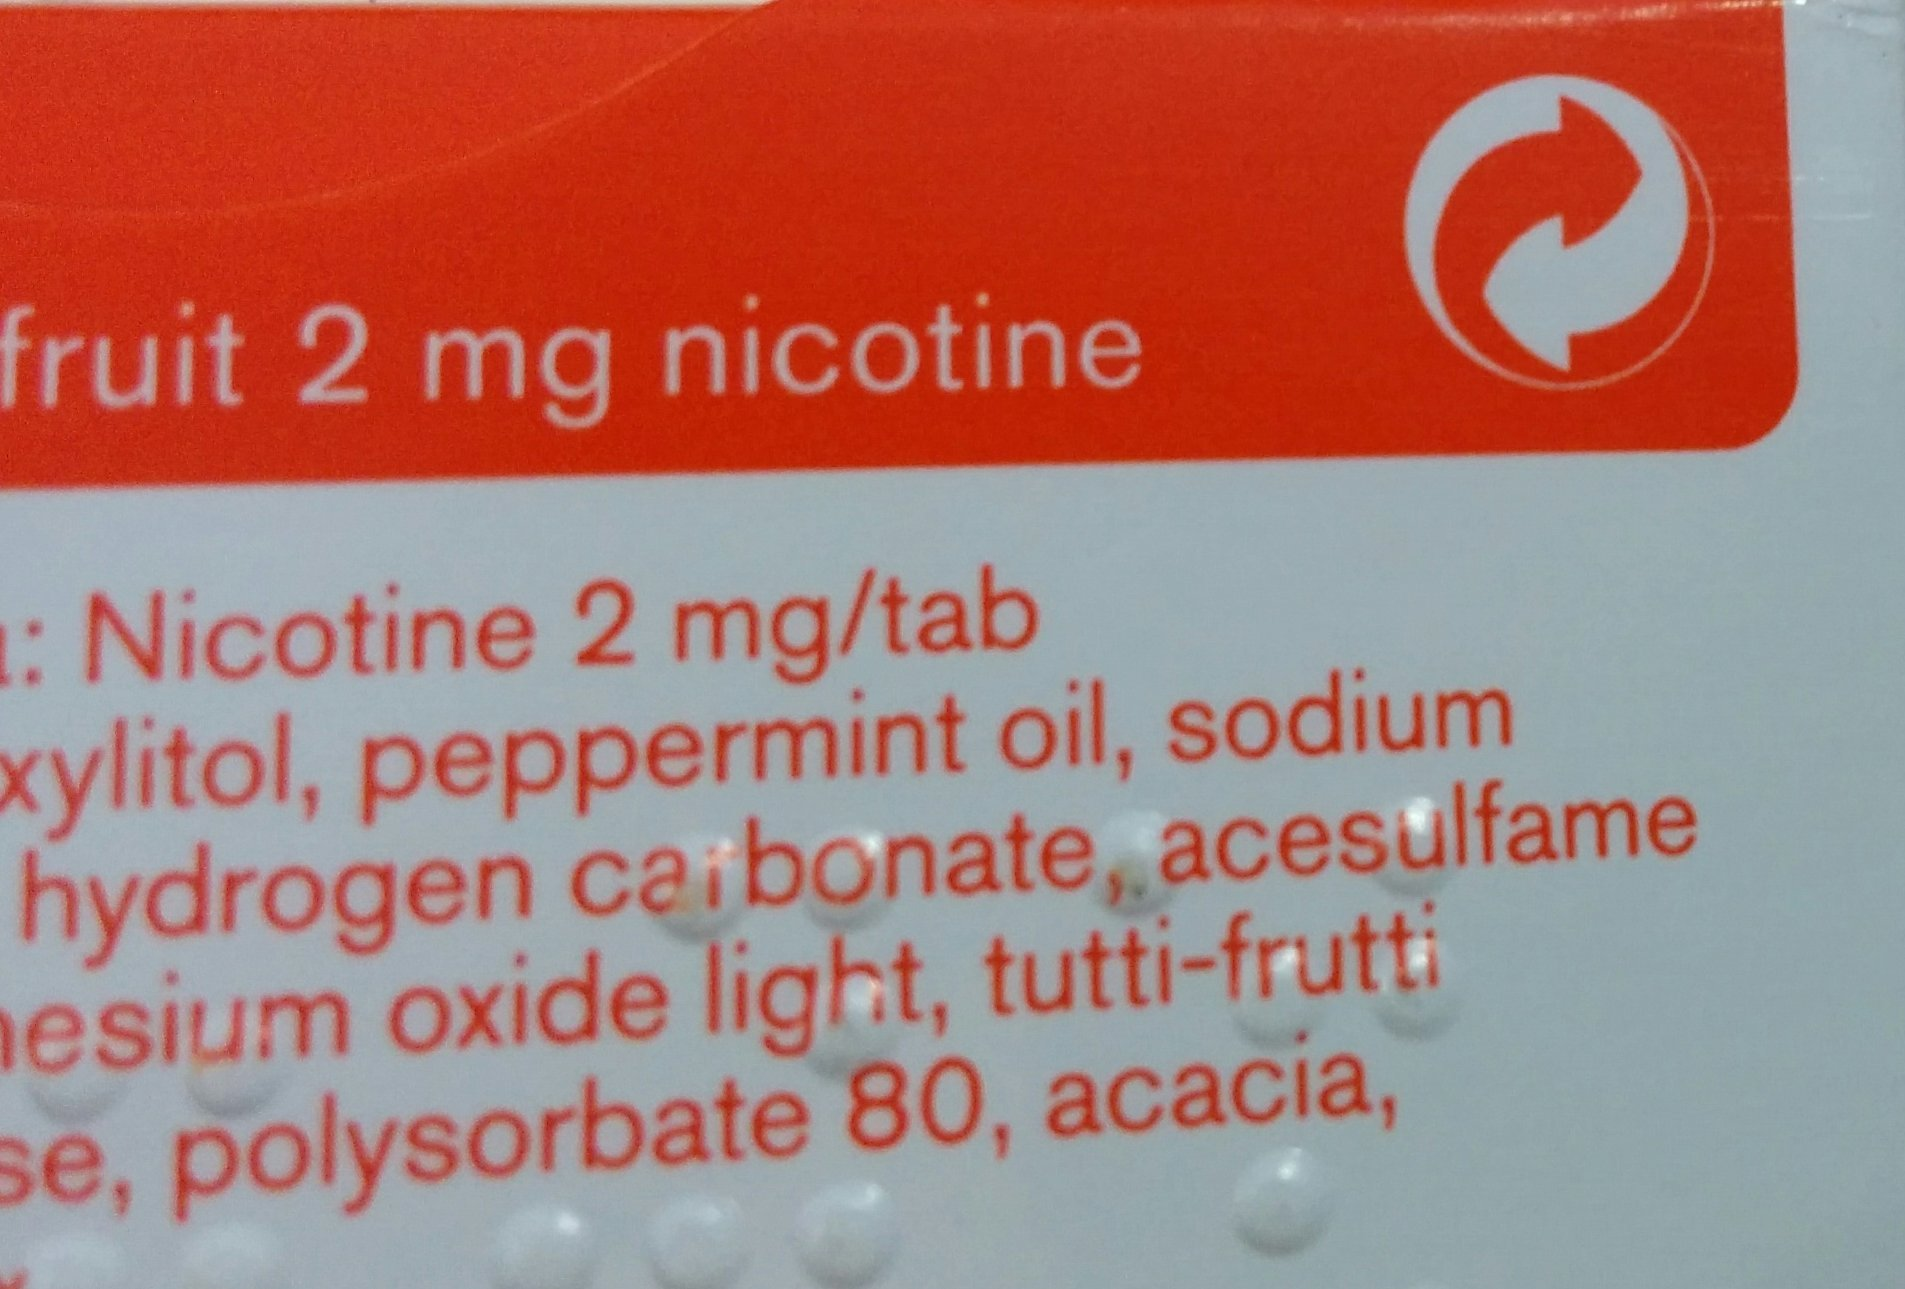 Nicorette fruit 2mg 4x105 ct-3 DAYS DELIVERY